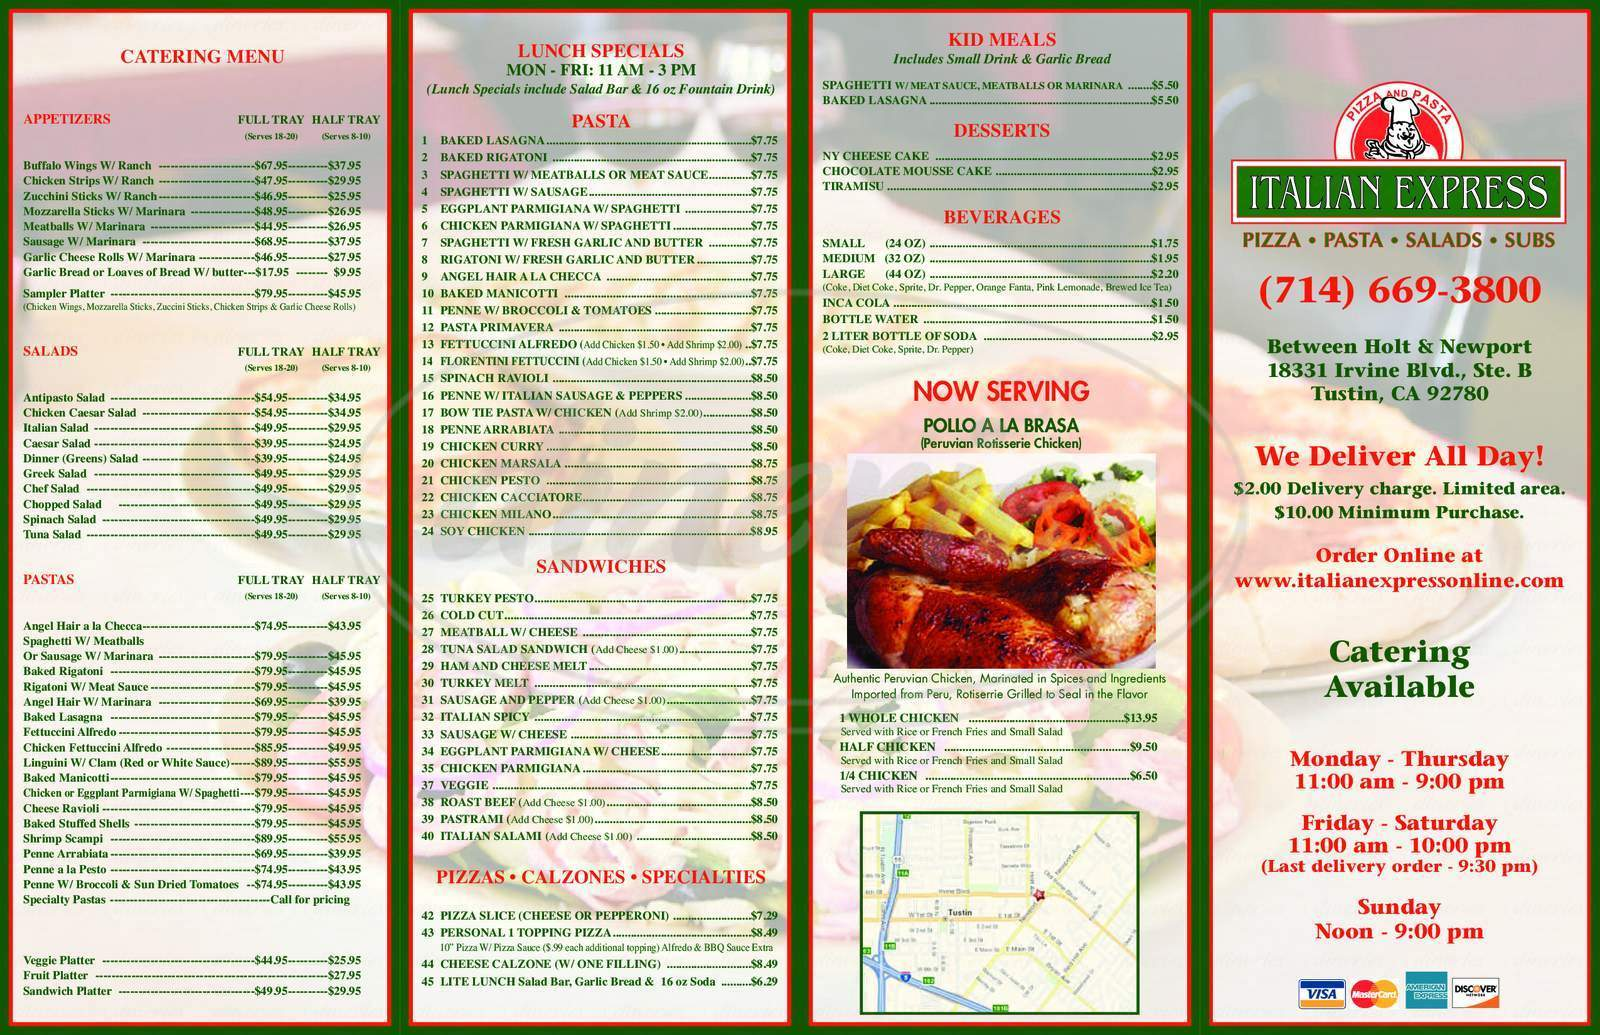 menu for Italian Express